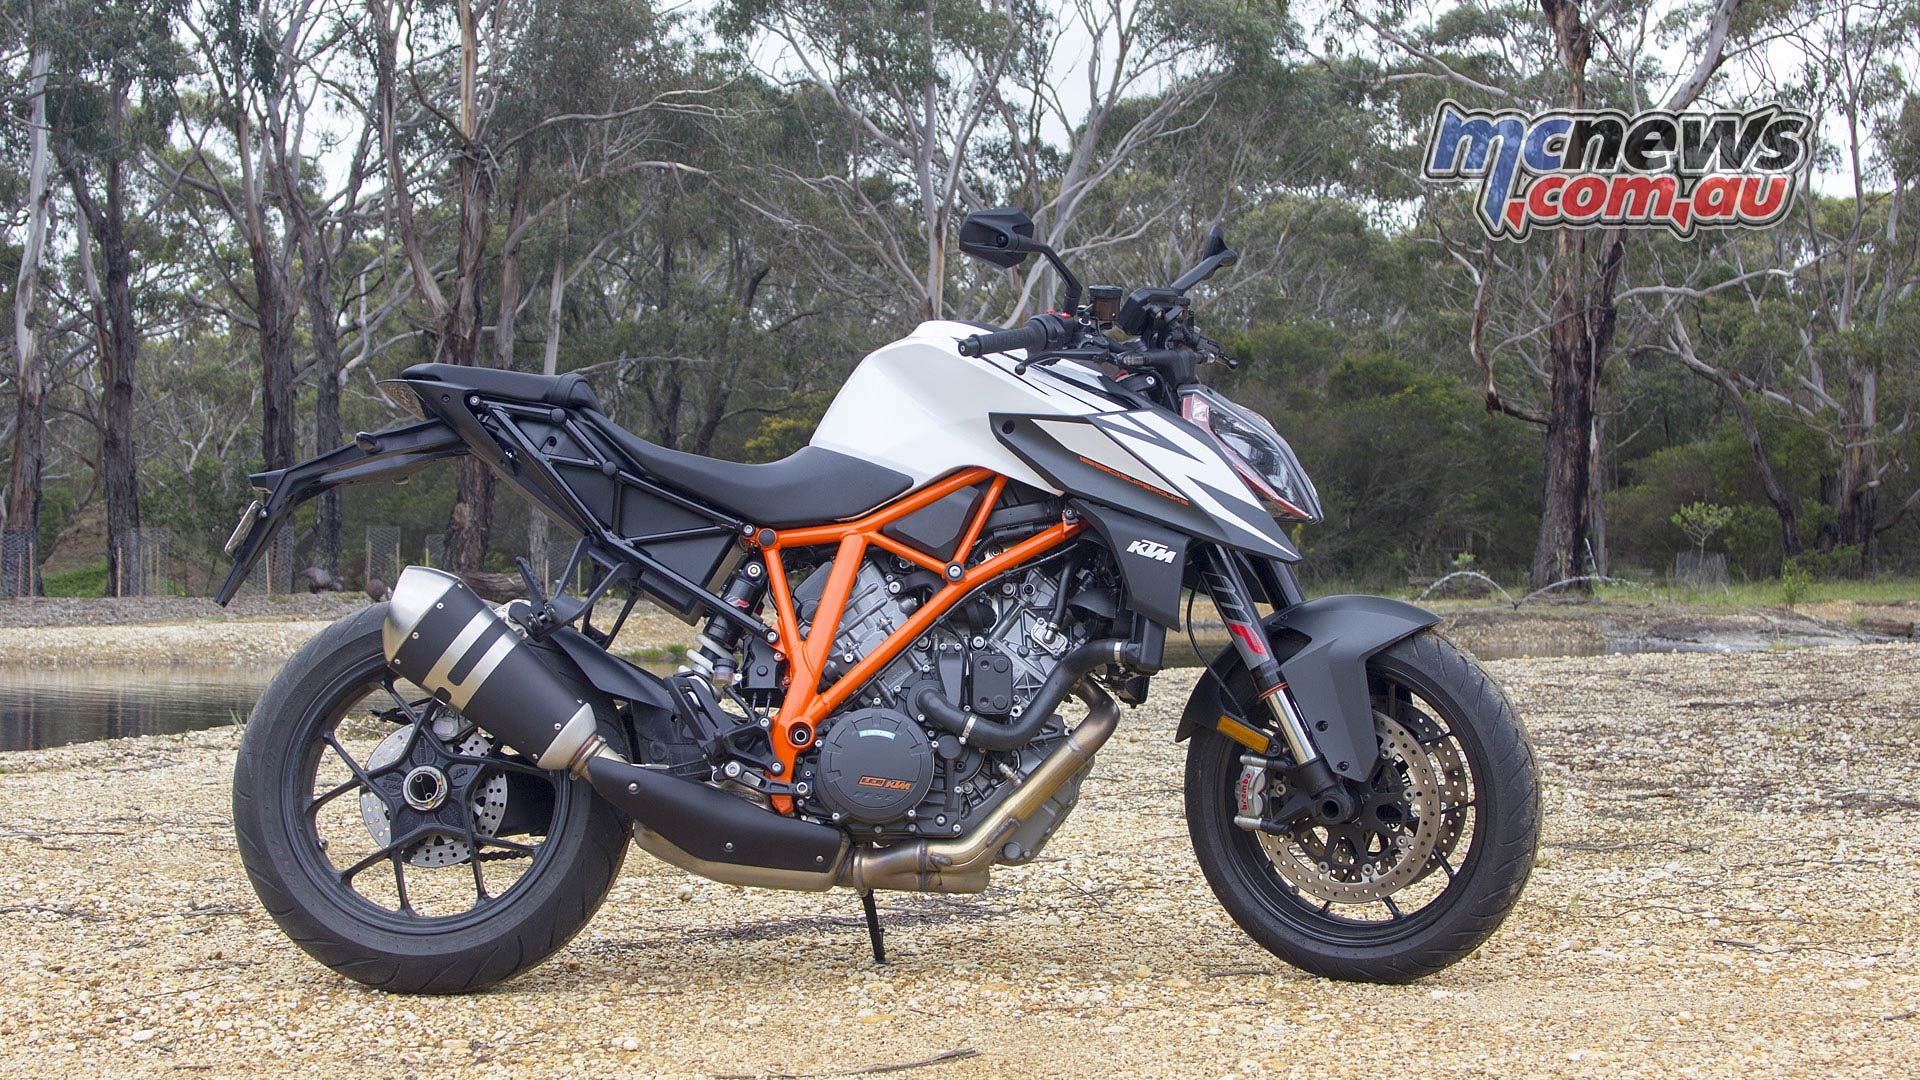 2019 Ktm 1290 Super Duke R Review Motorcycle Test Mcnews